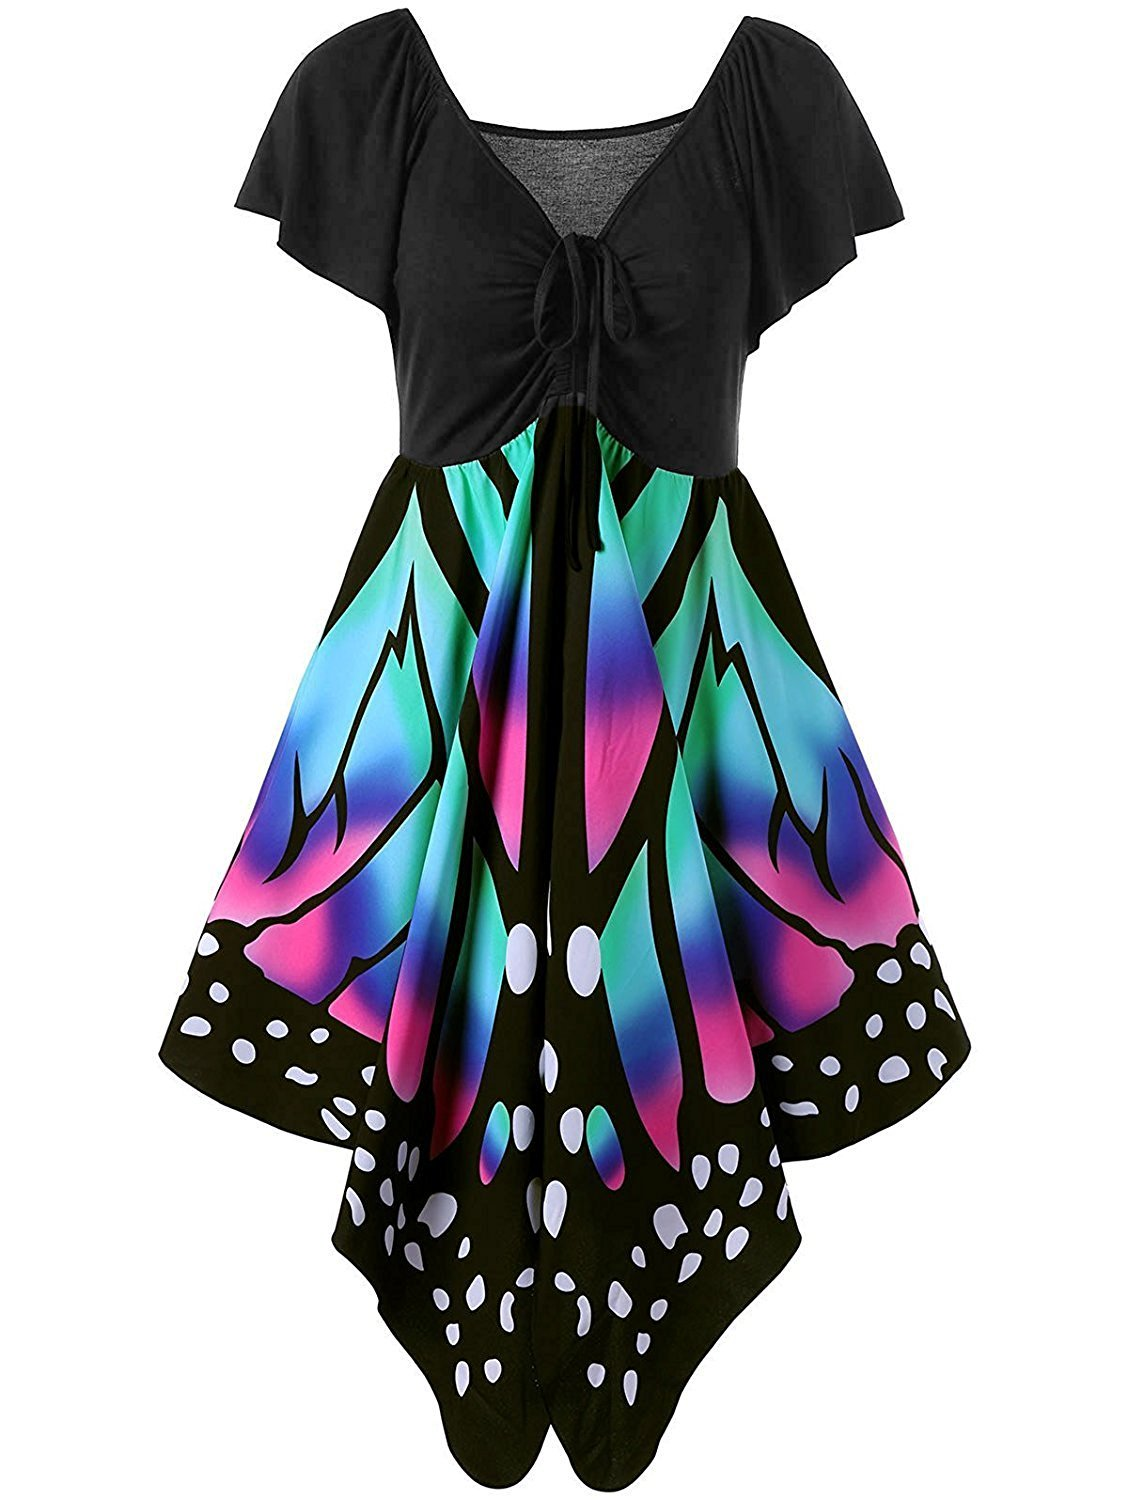 Available at Amazon: Imysty Plus Size Women's Butterfly Print Lace Up Short Sleeve Empire Waist V Neck Dress